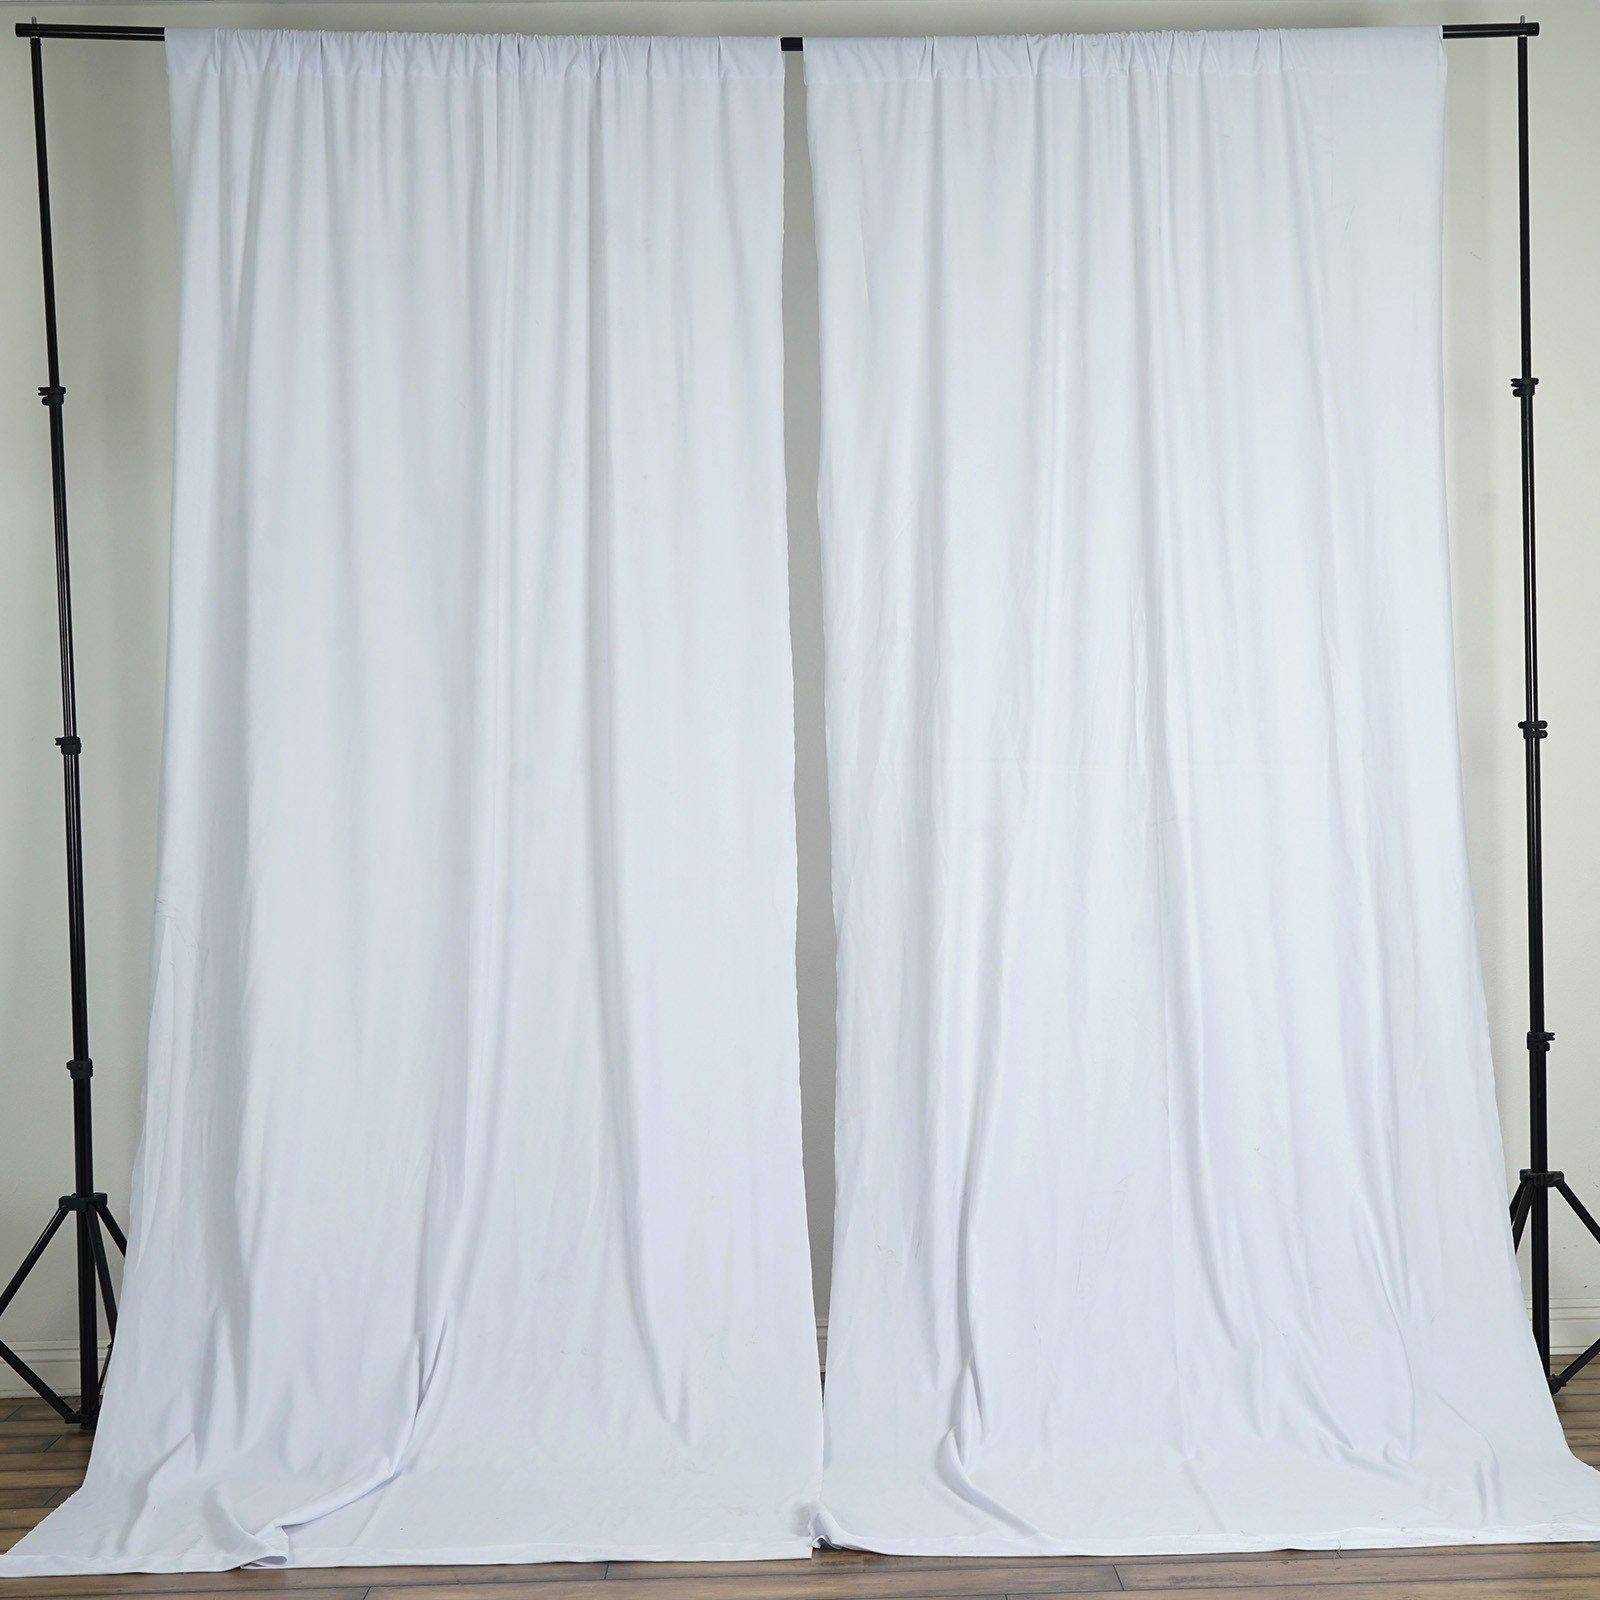 10FT White Polyester Curtain Stage Backdrop Partition